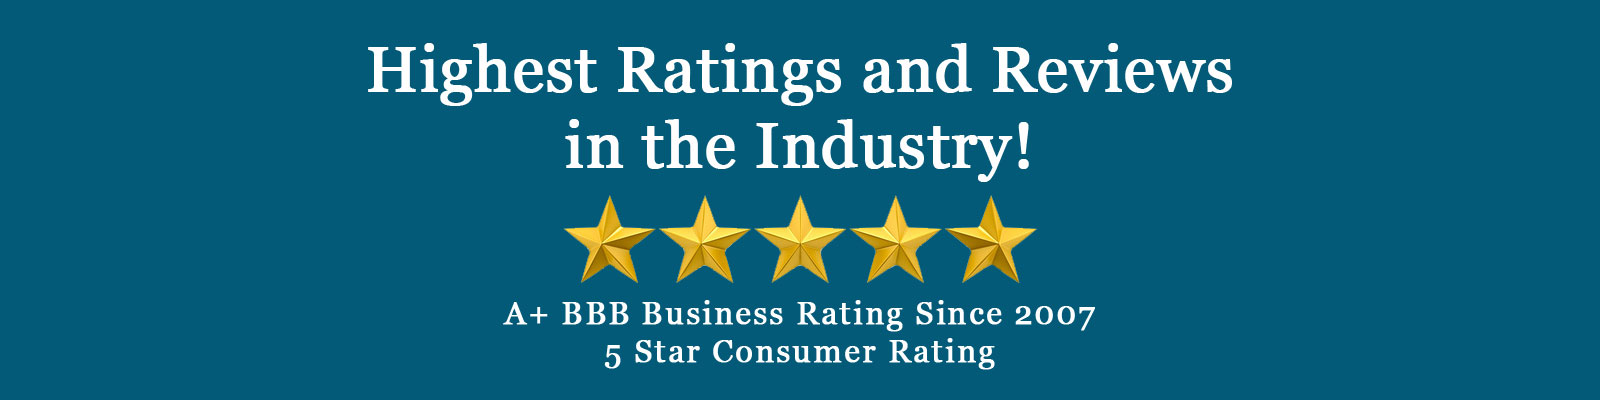 Highest Ratings and Reviews in the Industry